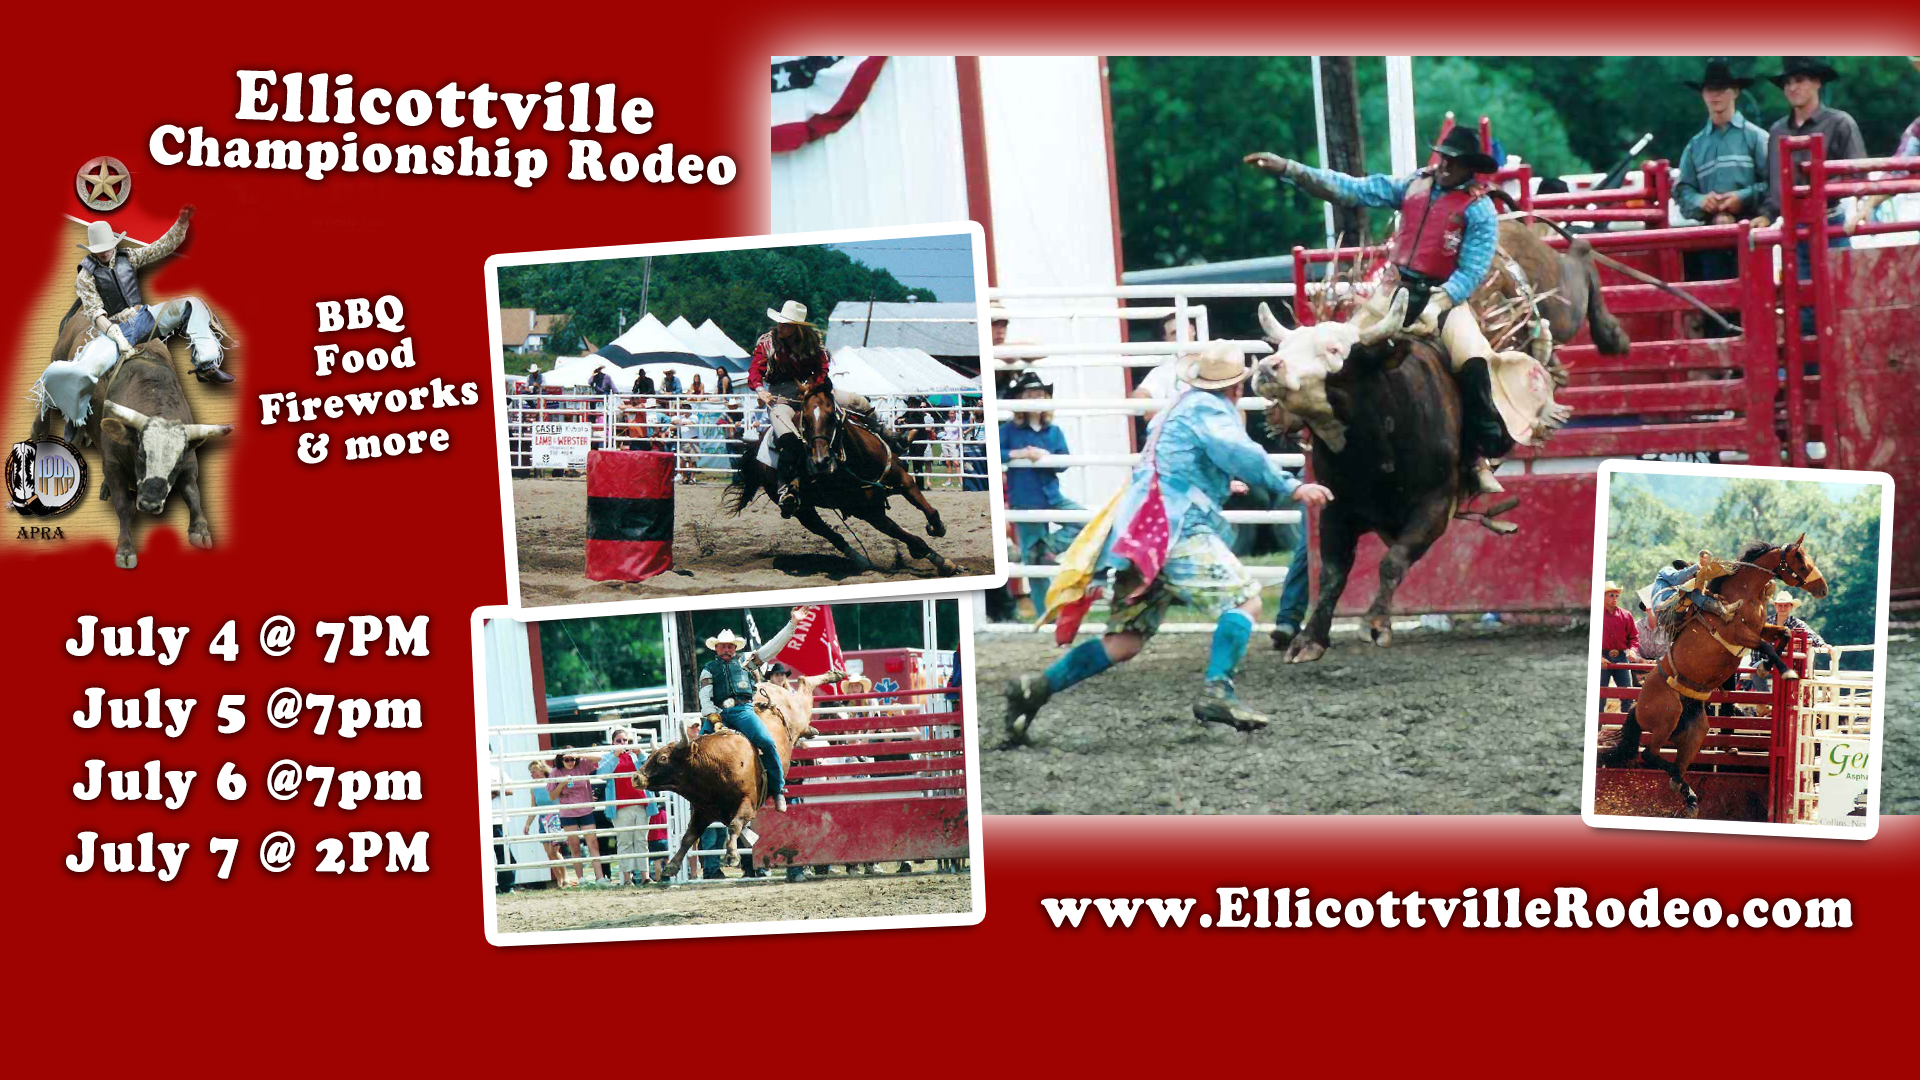 2019 Ellicottville Rodeo